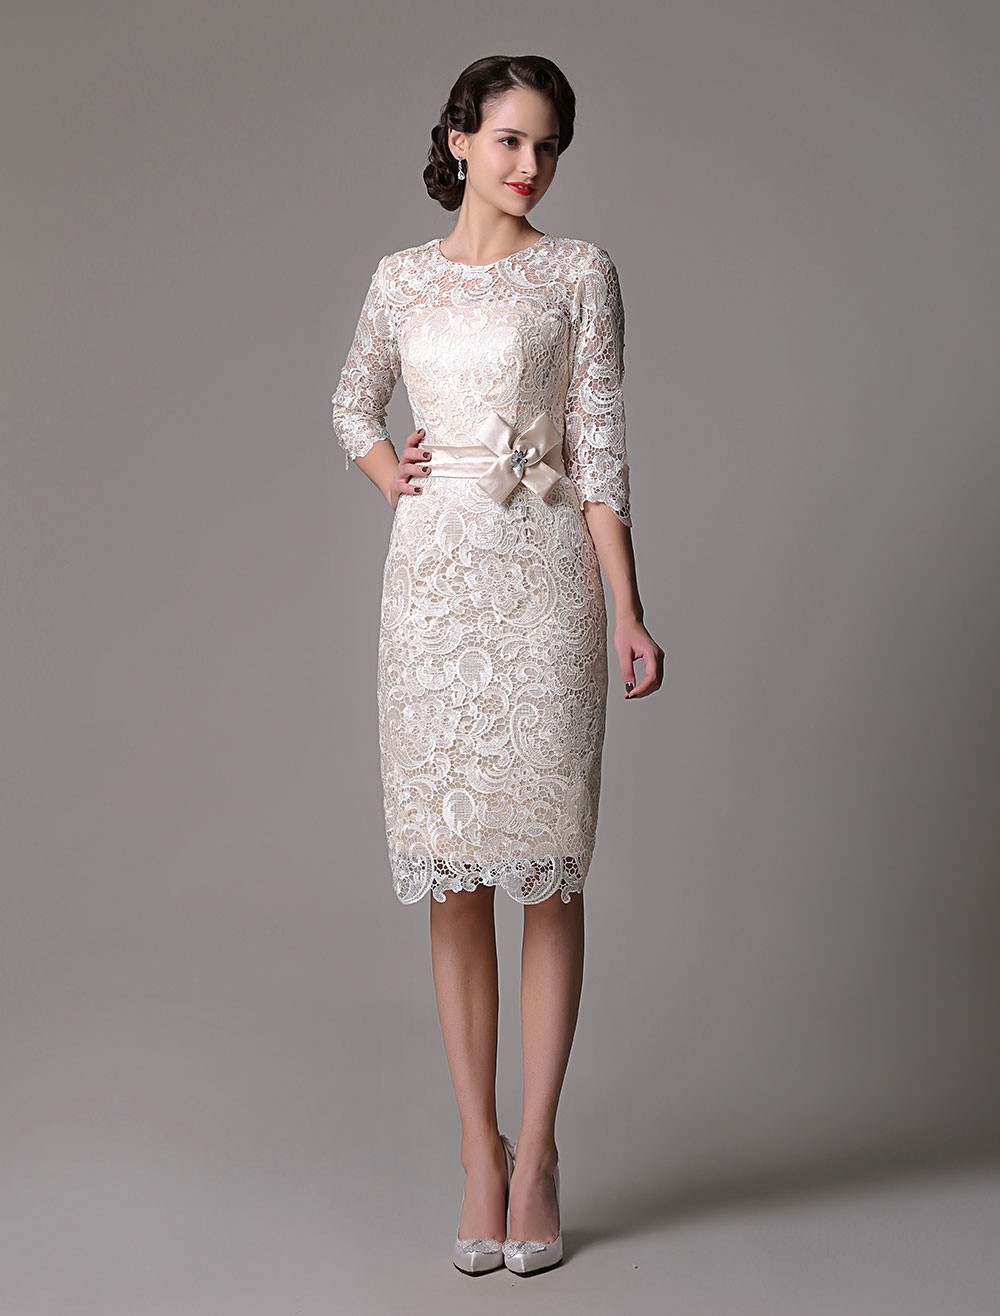 champagne cocktail dress for wedding